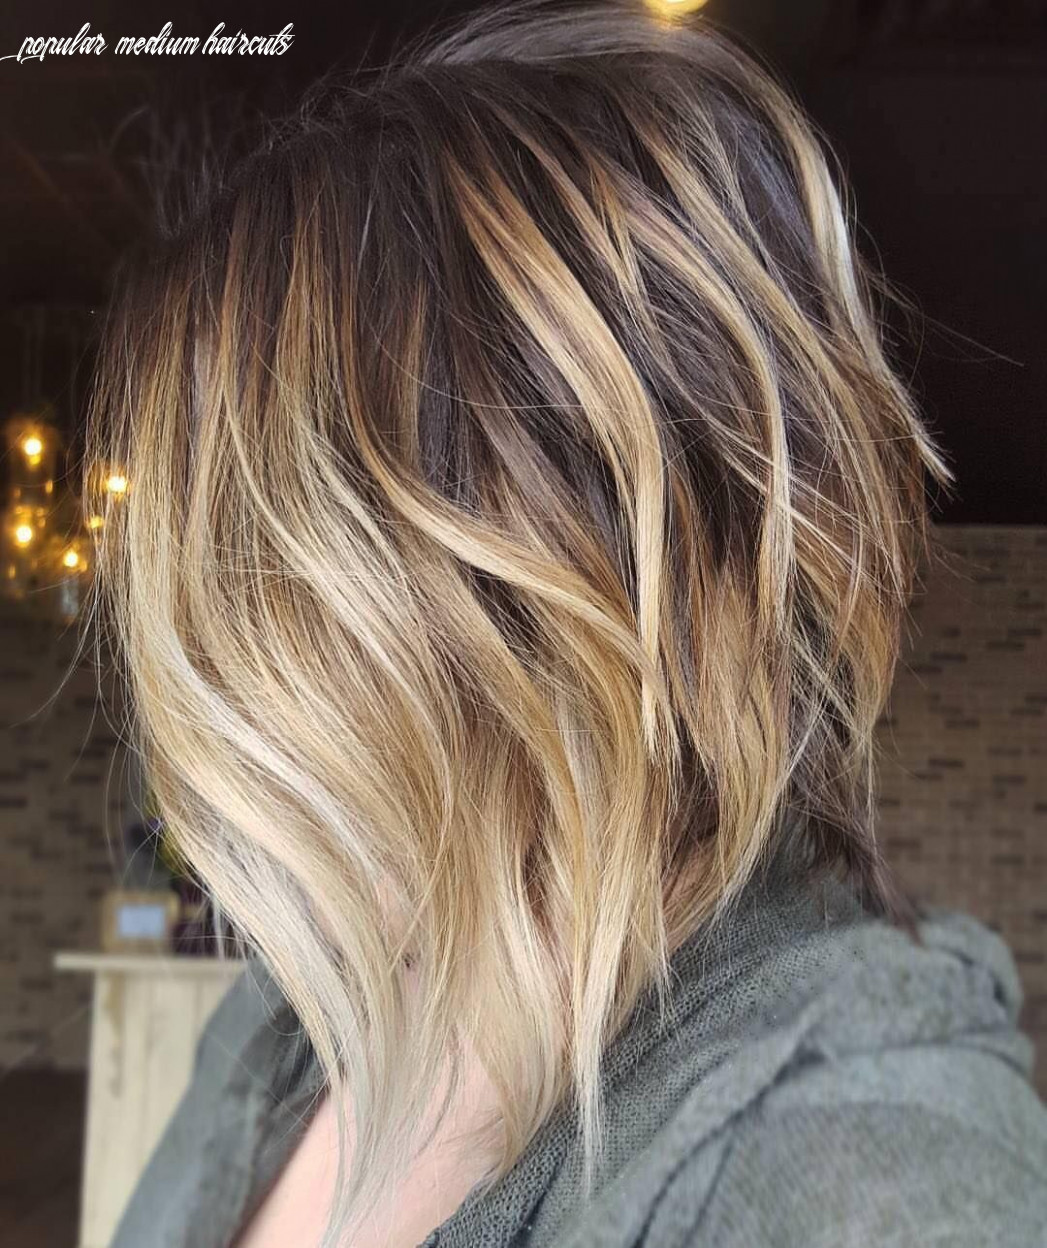 10 cute medium hairstyles with gorgeous color twists   hair hair